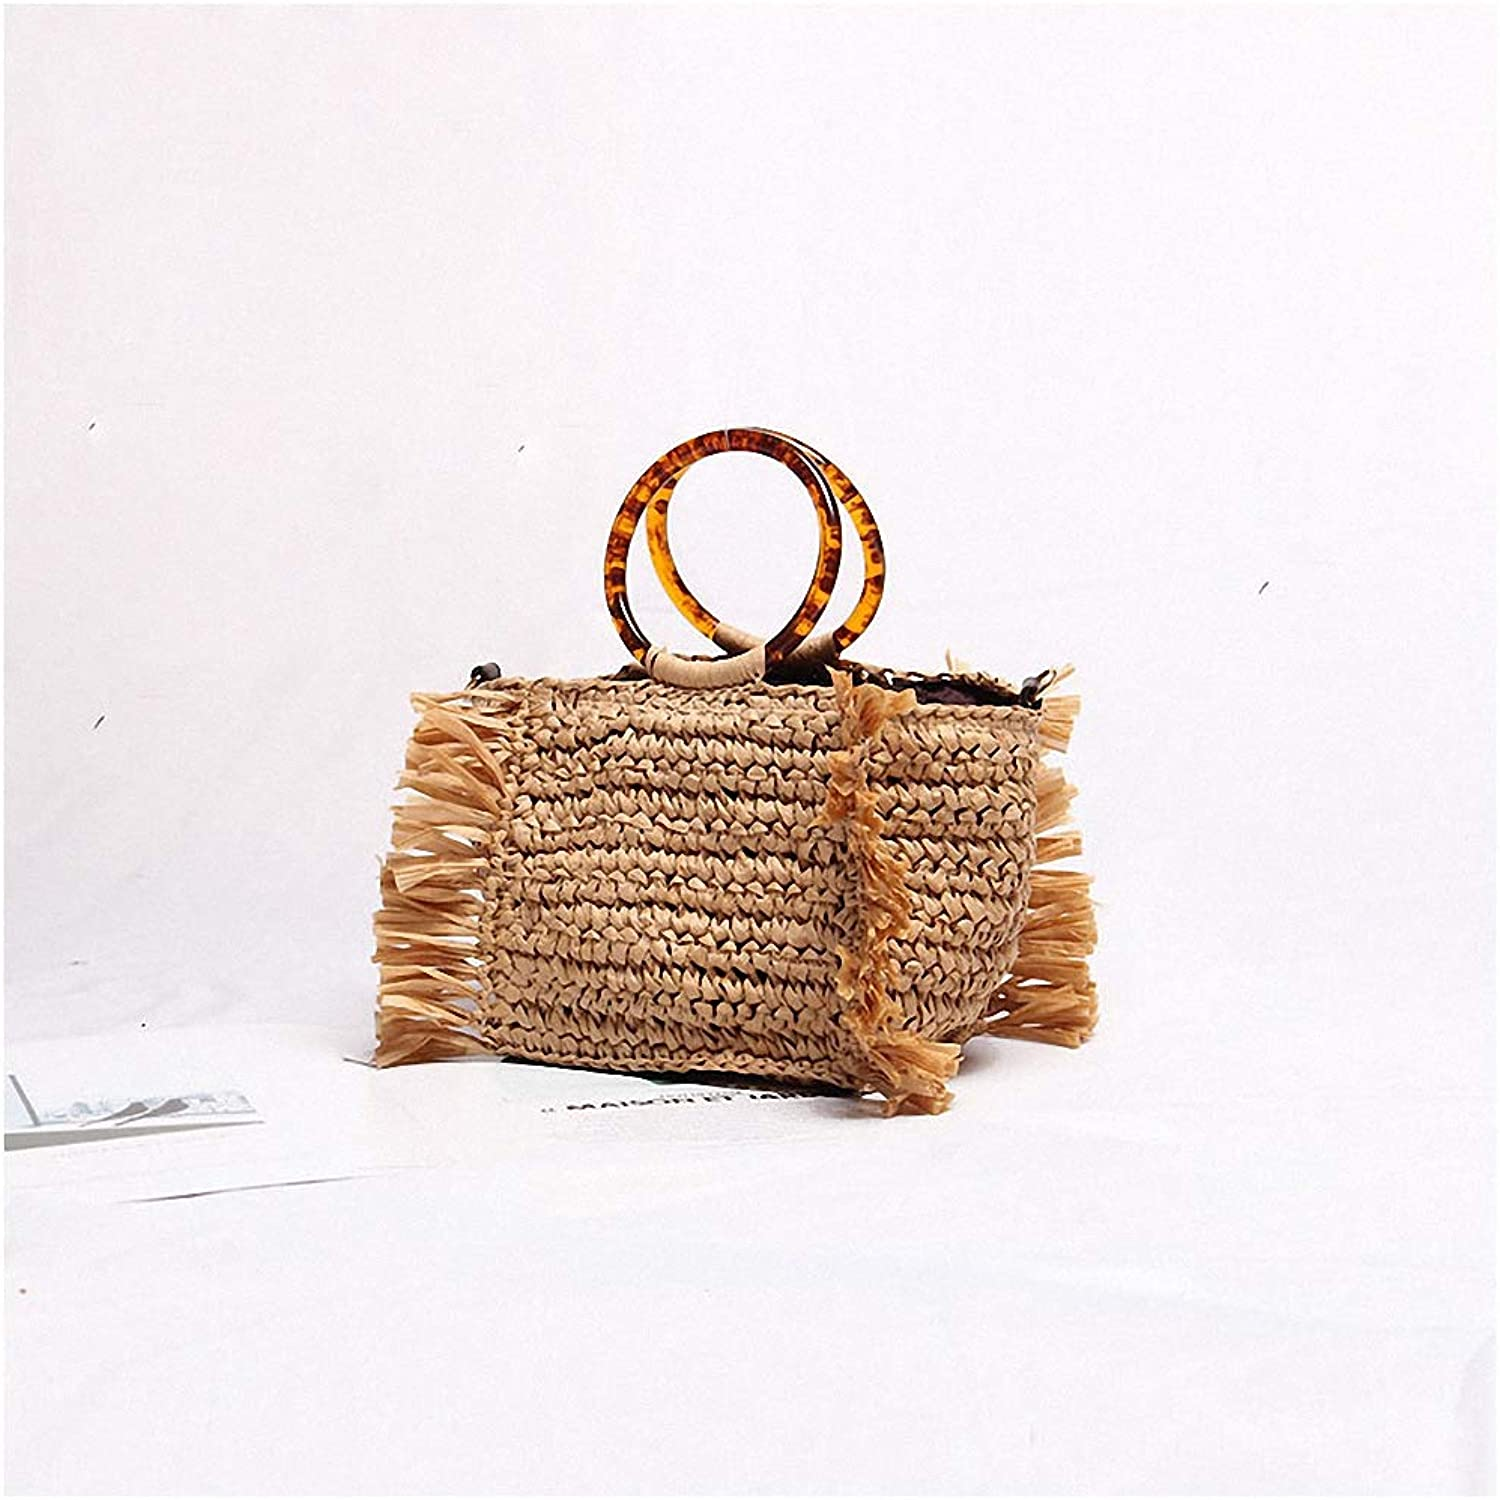 Nyusdar Vintage Women Shoulder Casual Bag Straw Handmade Beach Shopping Bag Rattan Handbag Summer Fashion Women Handbag for Ladies